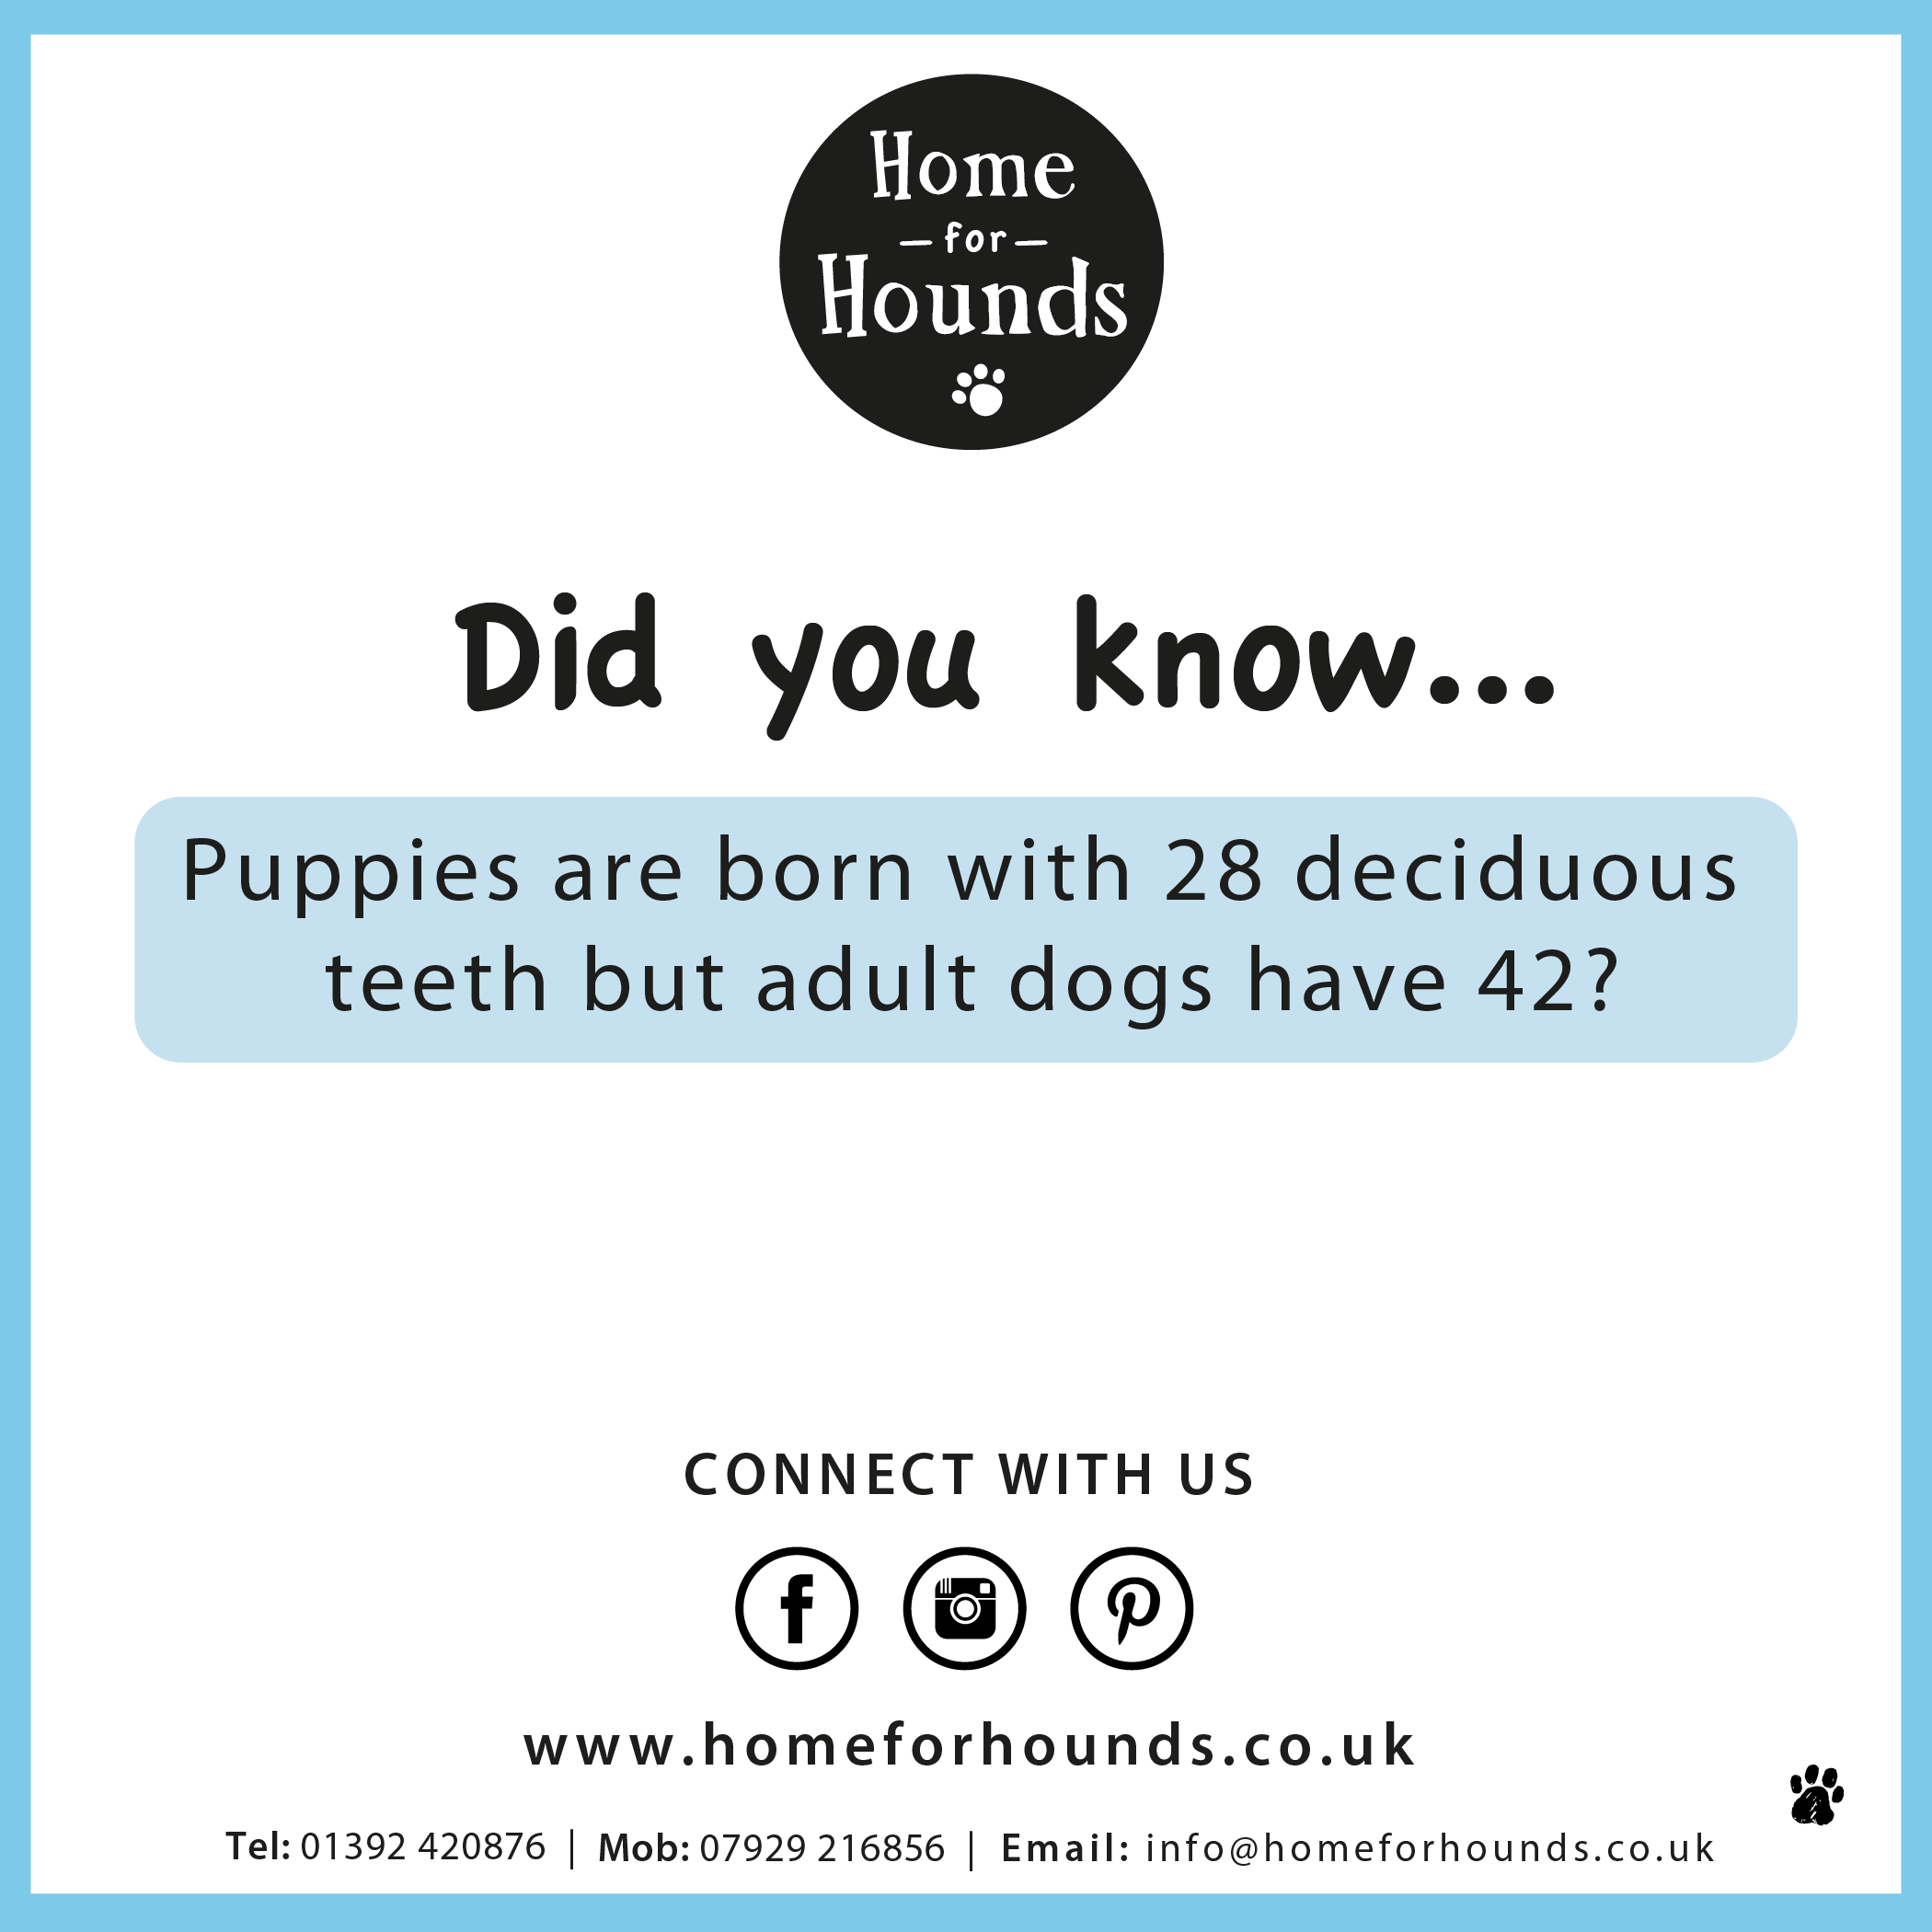 Did you know, puppies are born with 28 deciduous teeth but